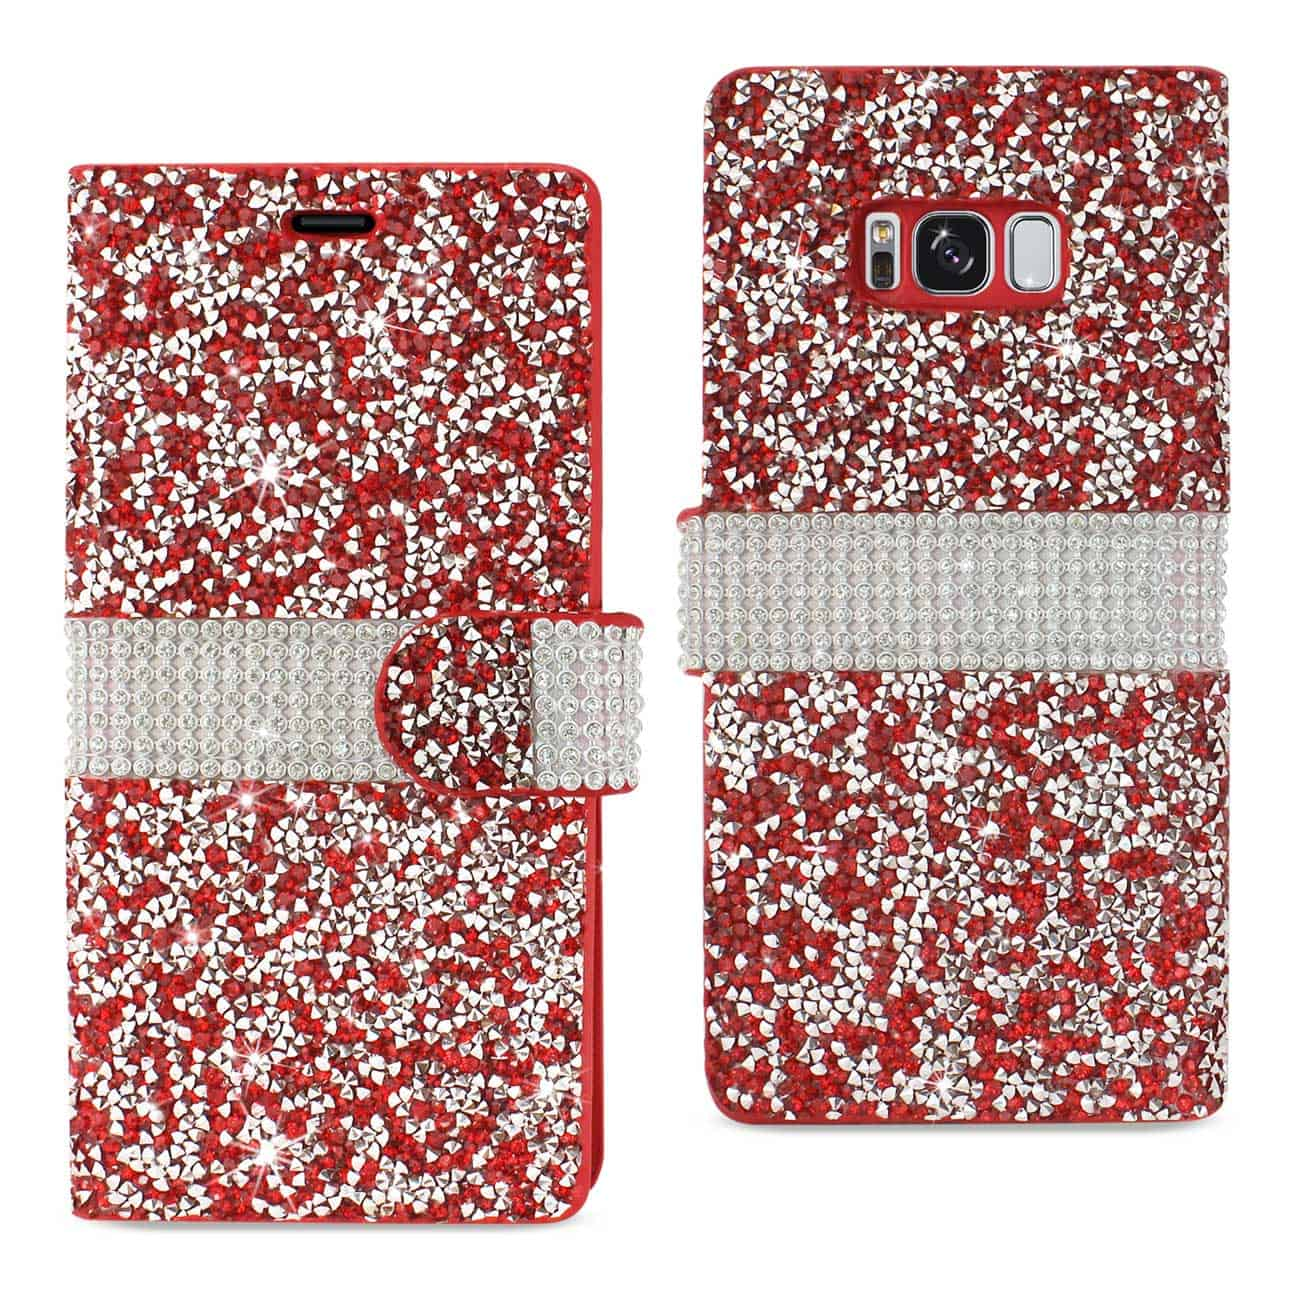 SAMSUNG GALAXY S8 EDGE DIAMOND RHINESTONE WALLET CASE IN RED